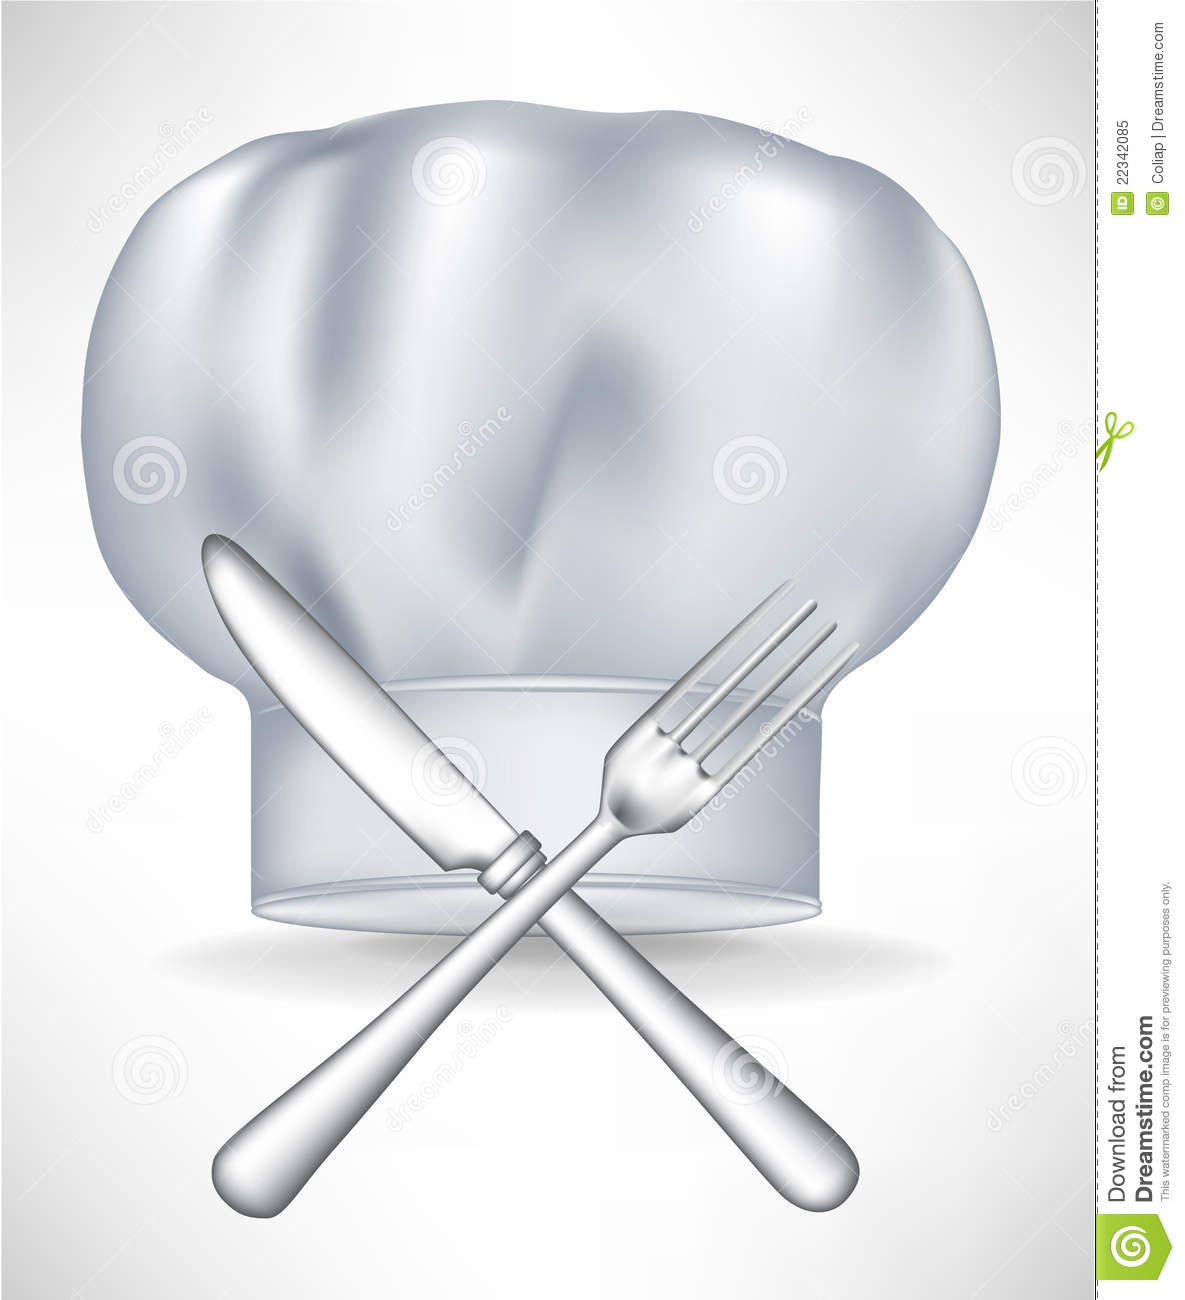 Chef Hat With Crossed Knife And Fork Royalty Free Stock Photo   Image